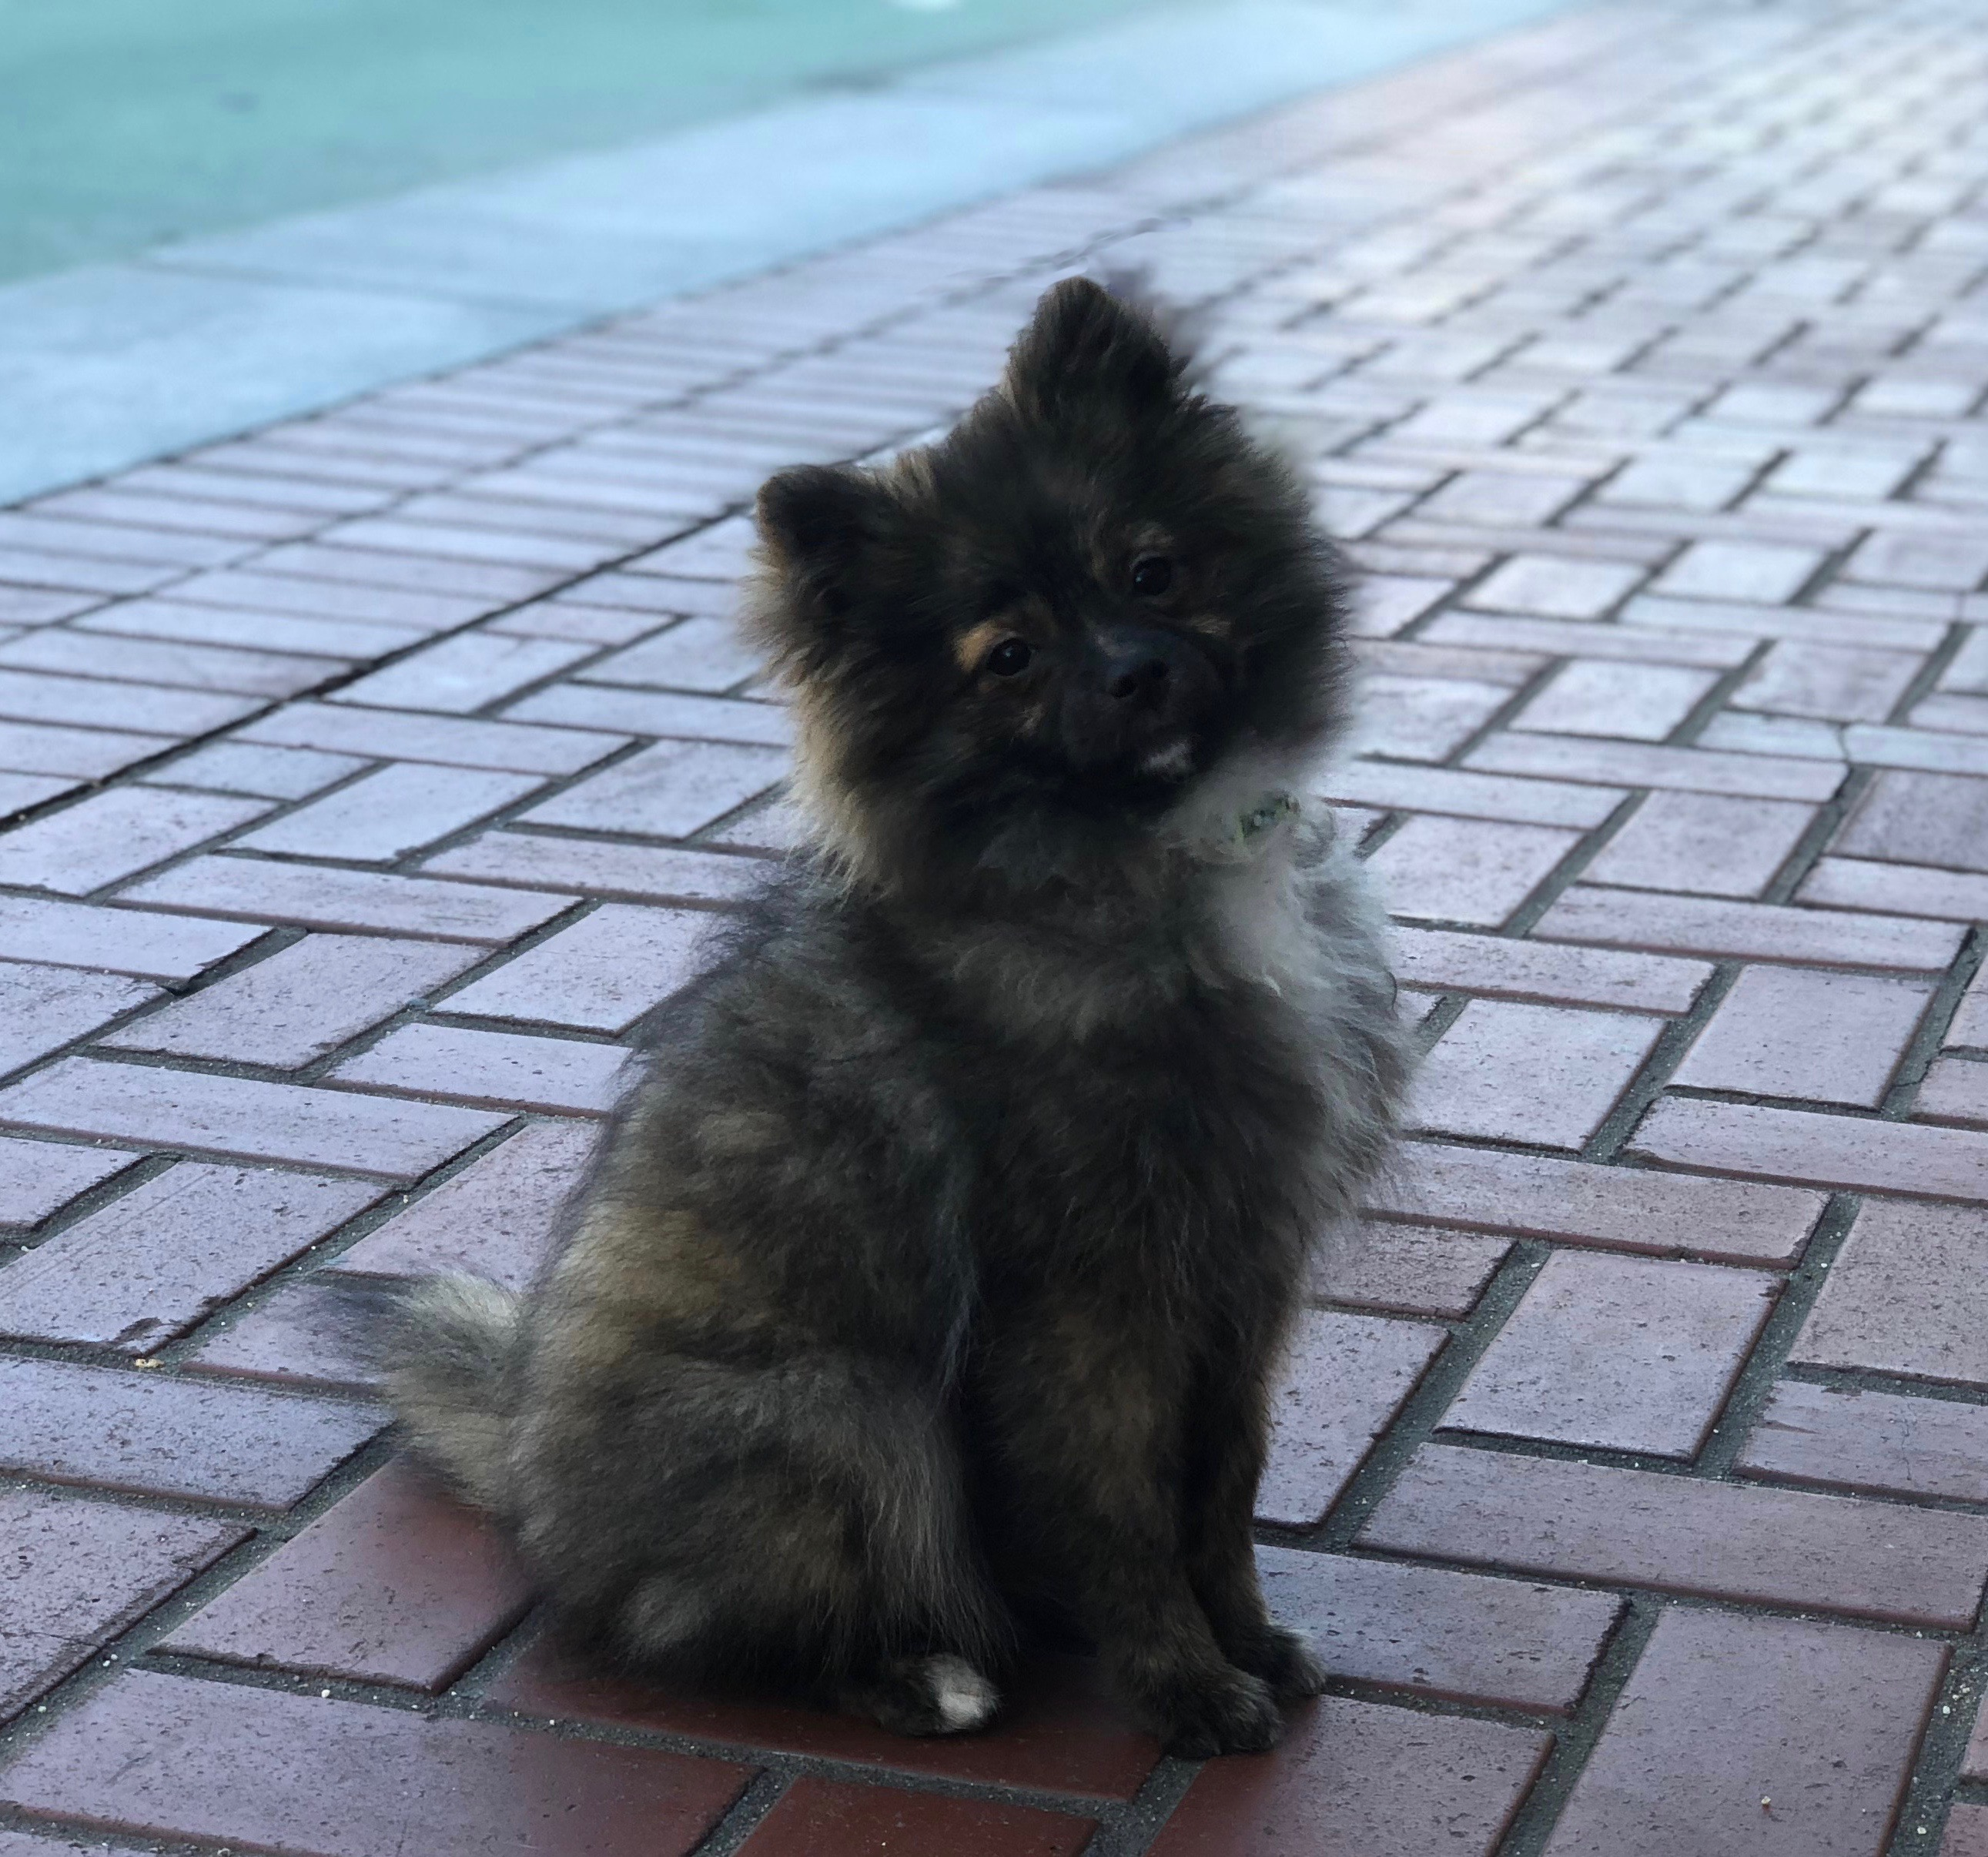 Adorable Fluffy Mottled Pomeranian Puppy Cocking His Head To One Side